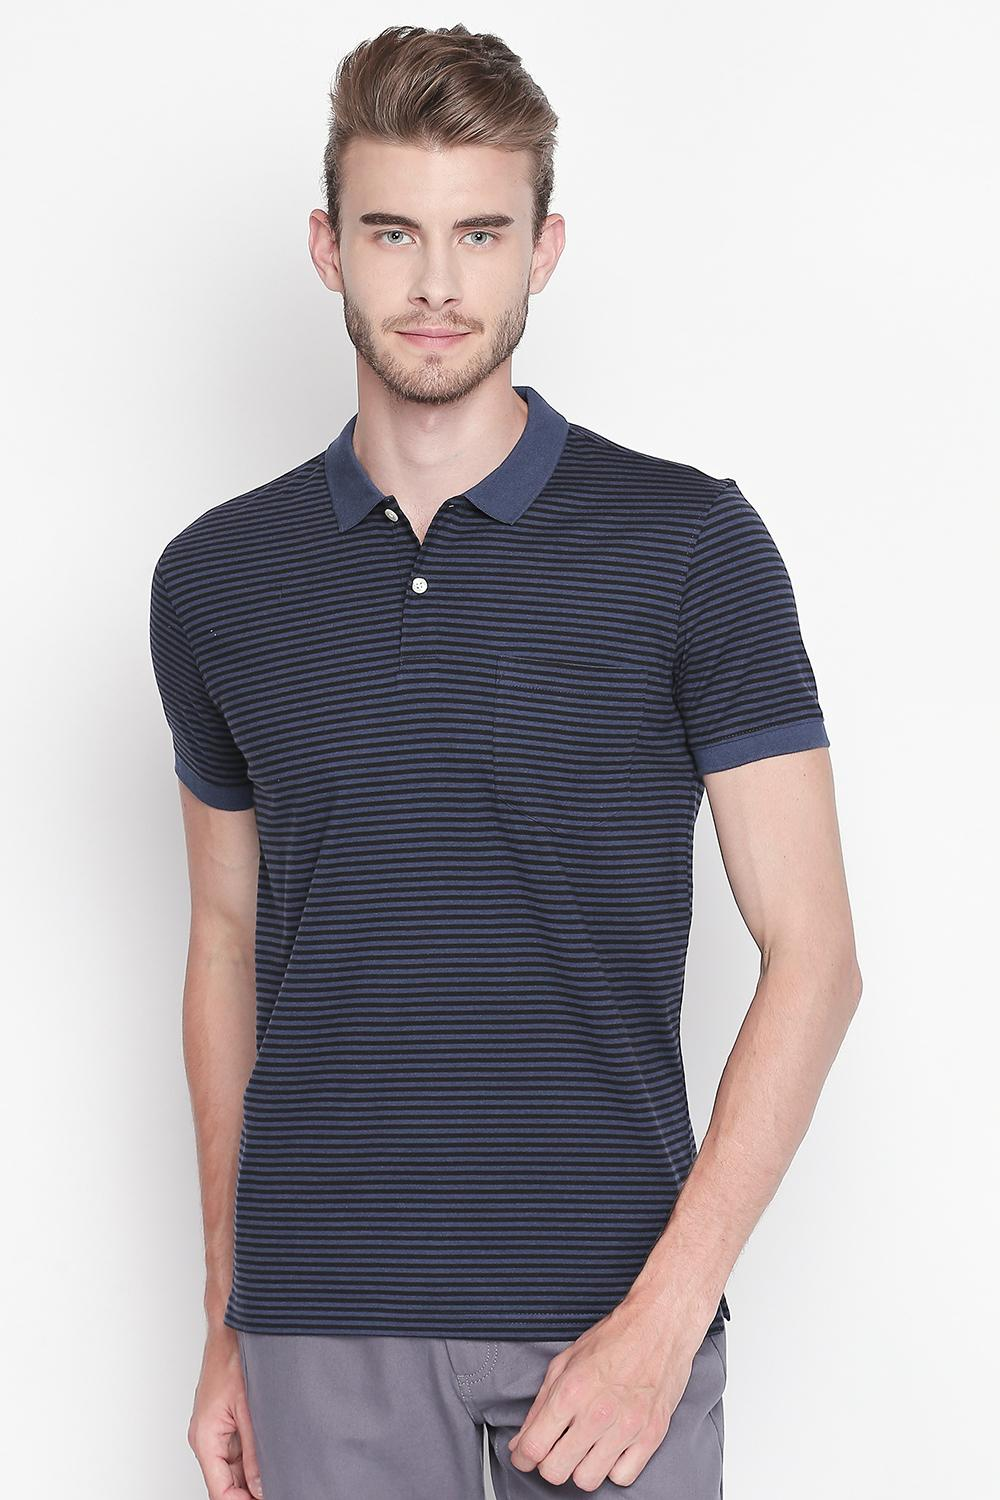 be6b1279 Buy T Shirts for Men Online with Best Price in India | Pantaloons